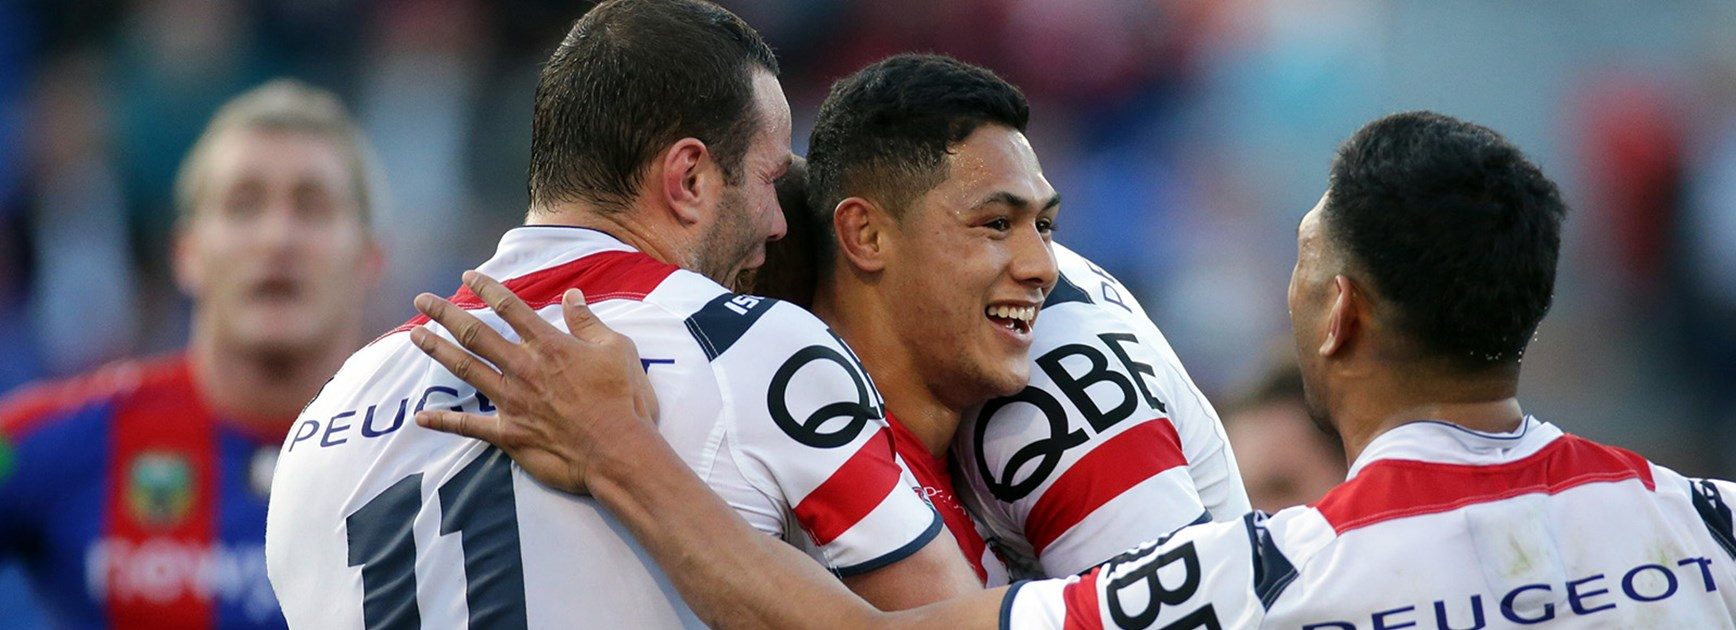 Roosters players celebrate another Roger Tuivasa-Sheck try against Newcastle.